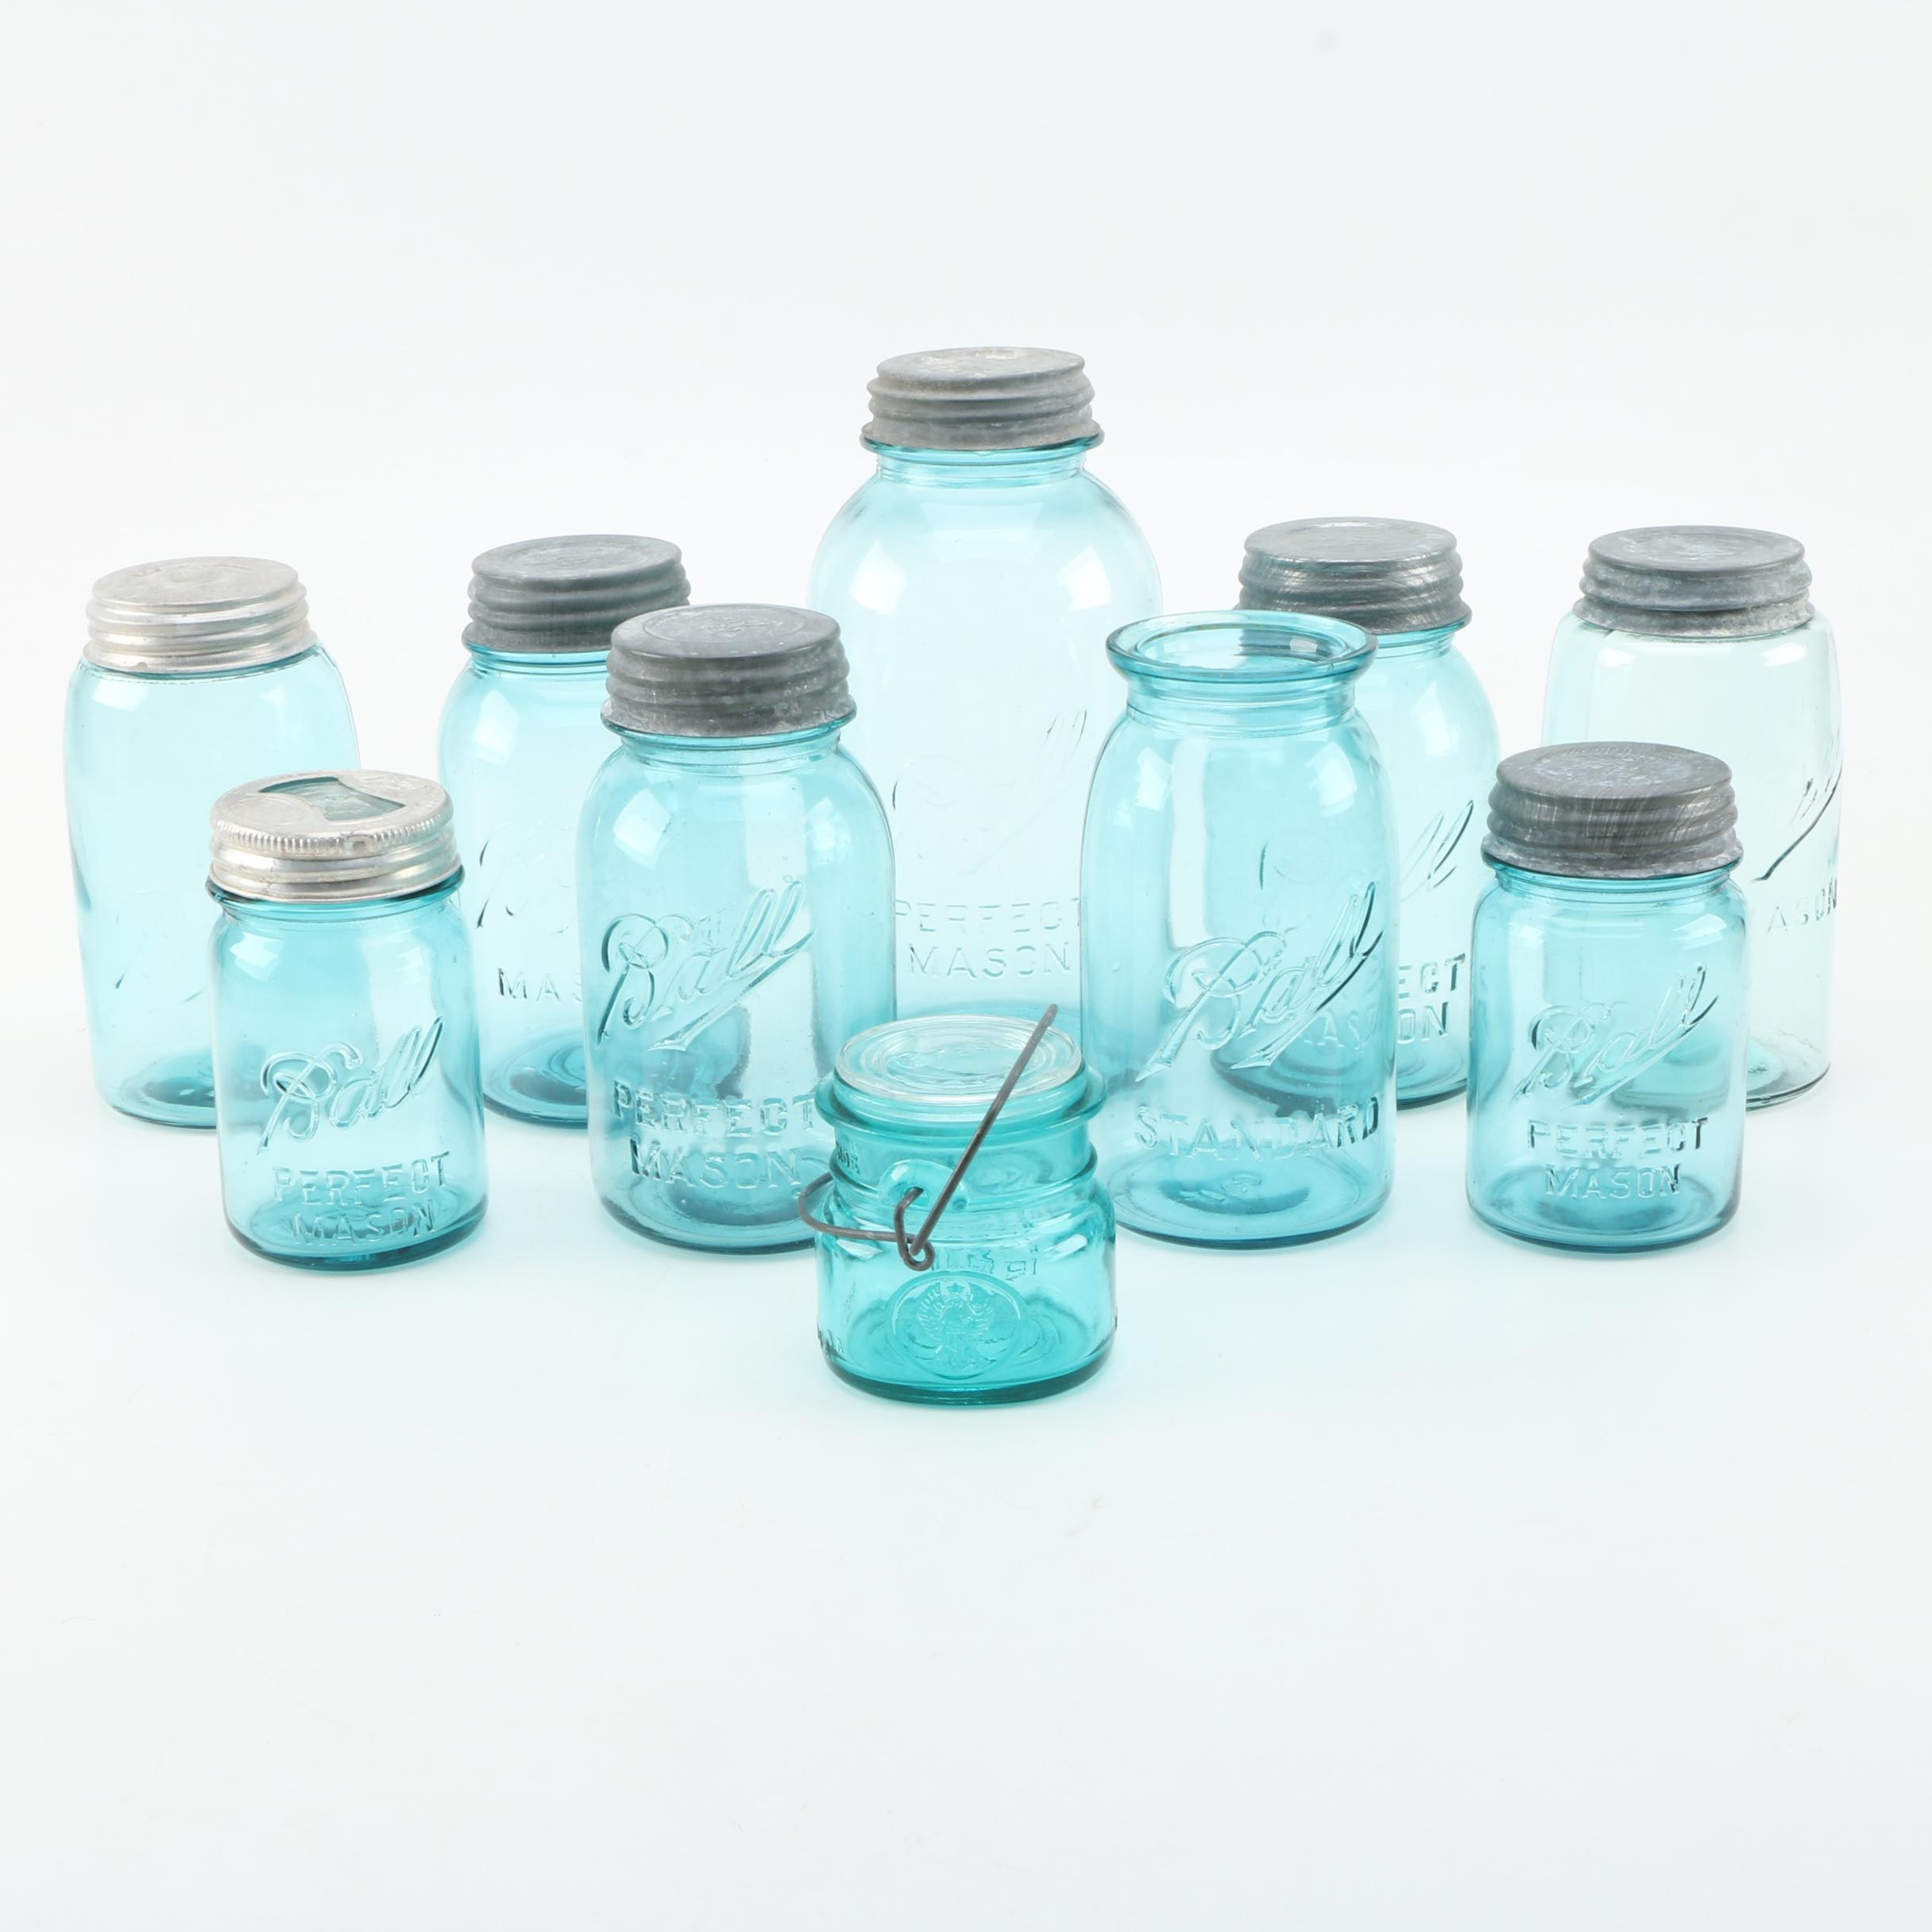 Vintage Glass Ball and Presto Mason Jars